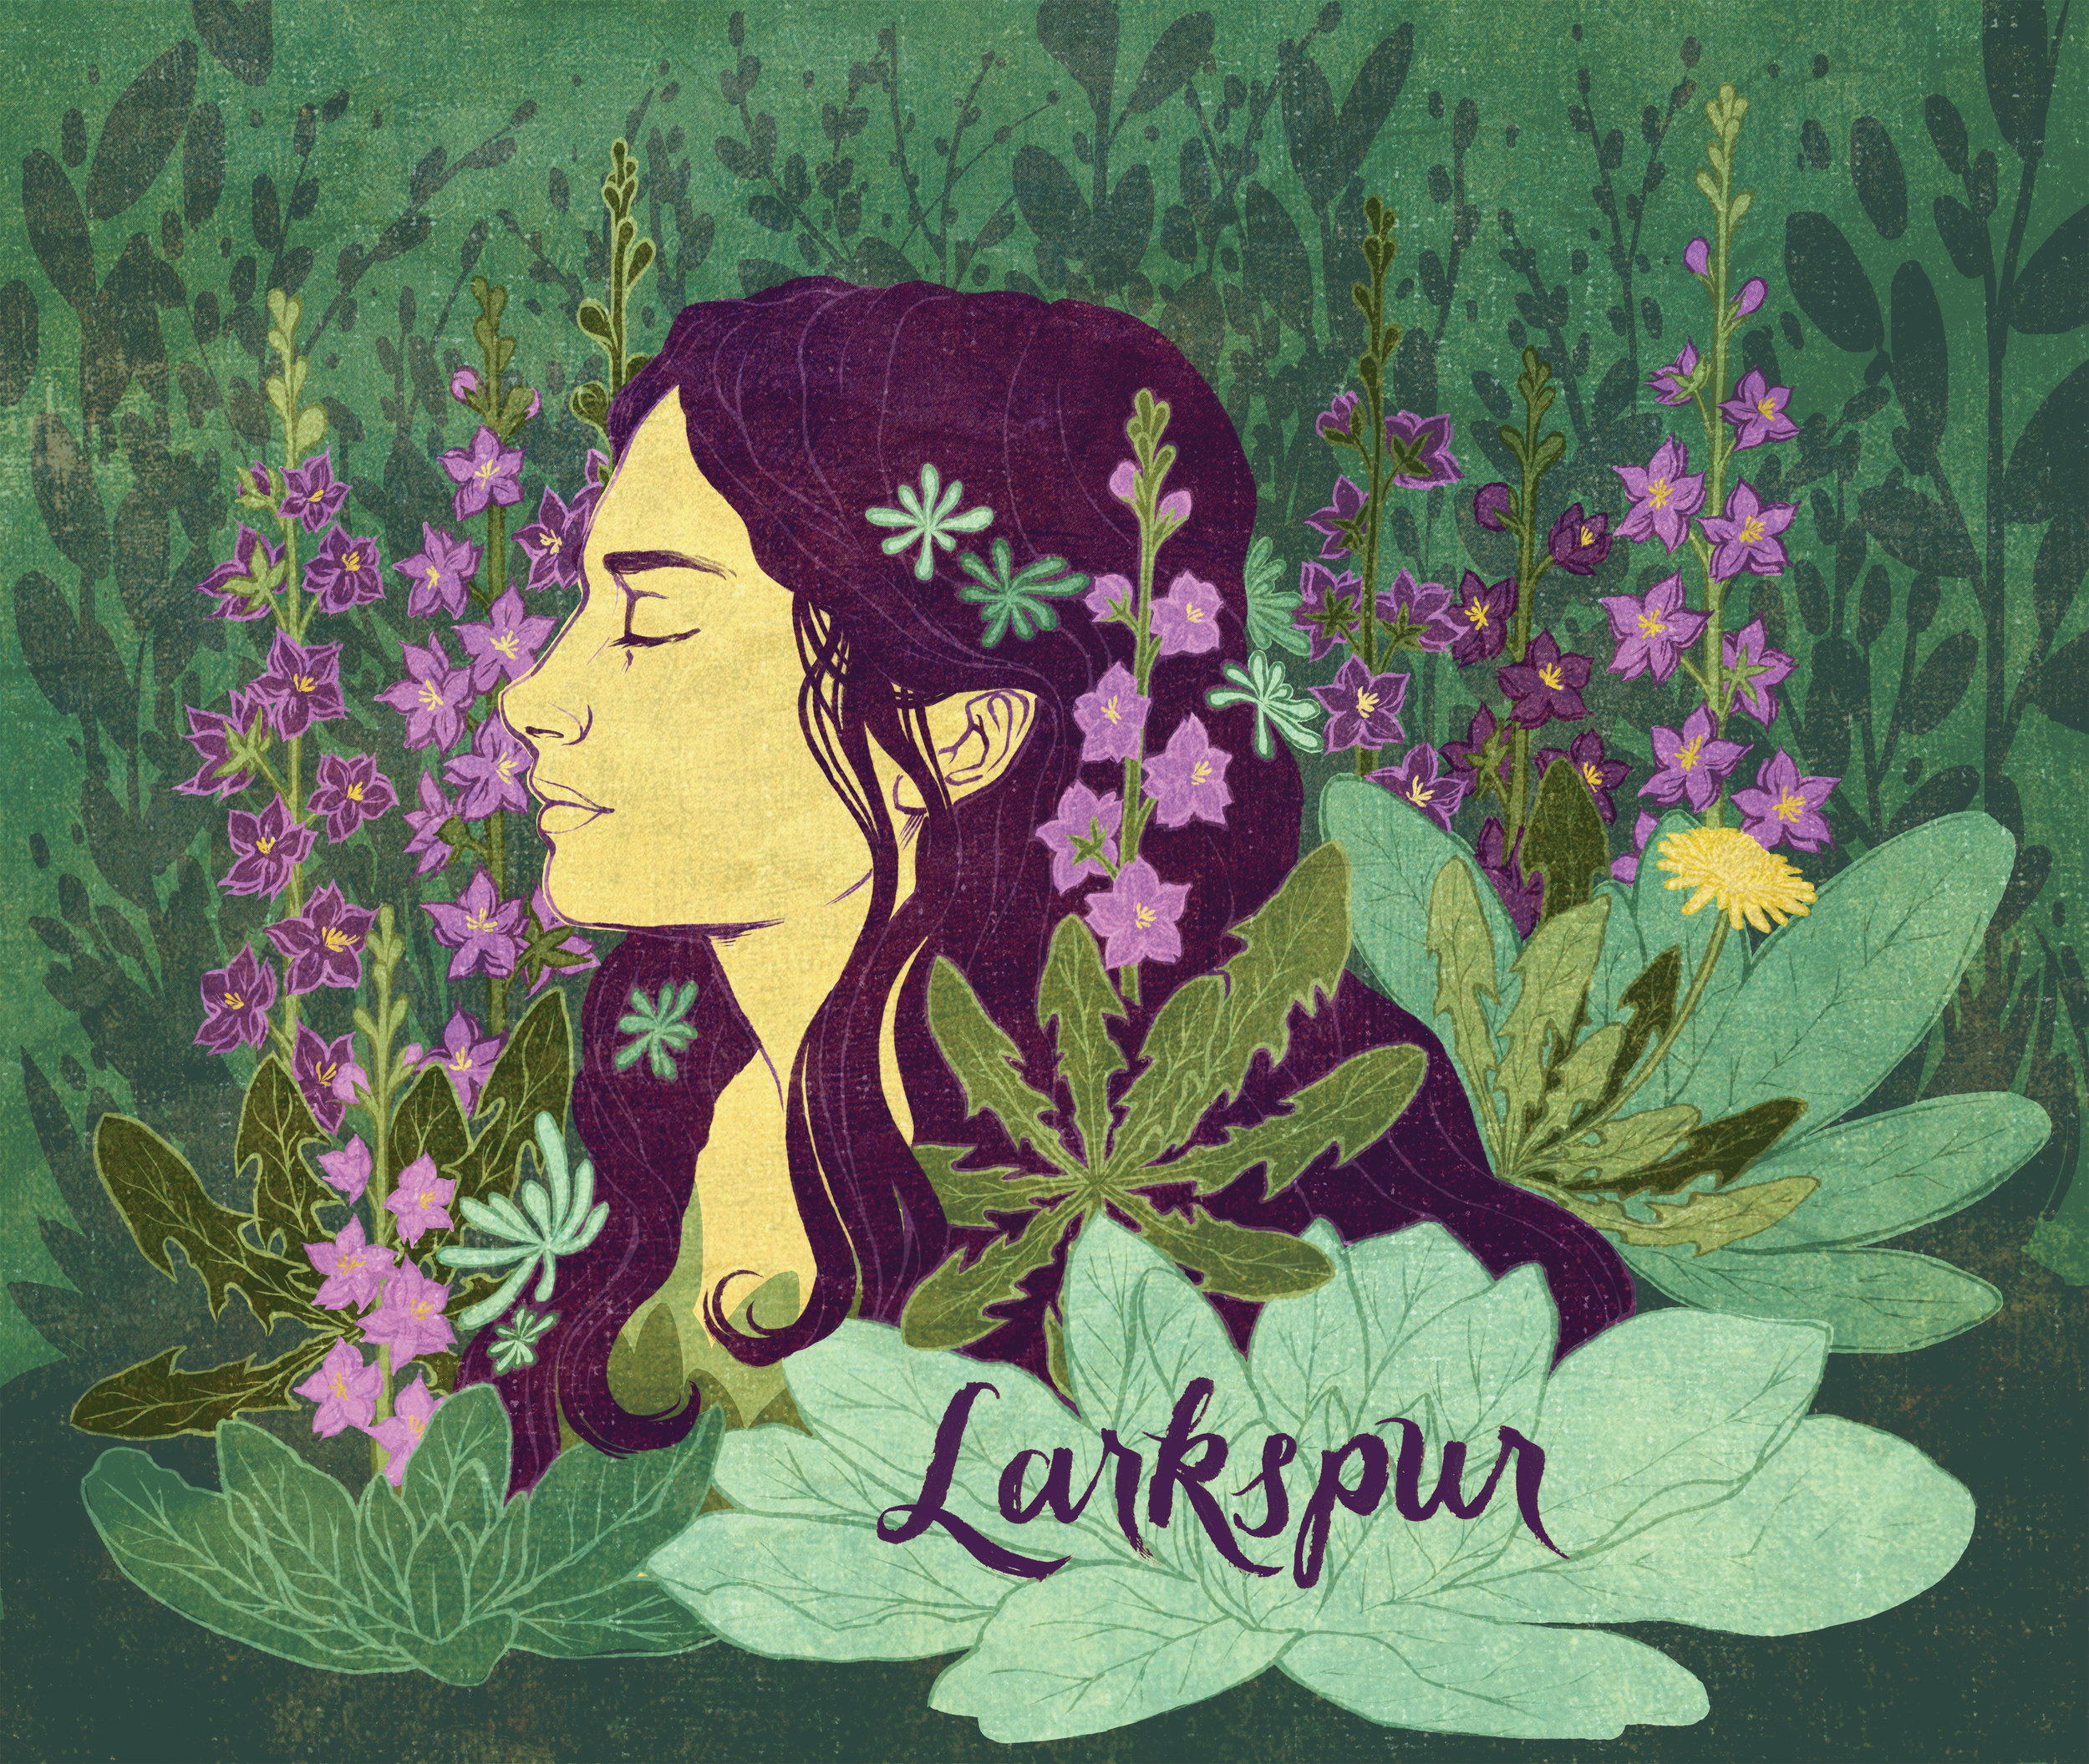 Larkspur Album